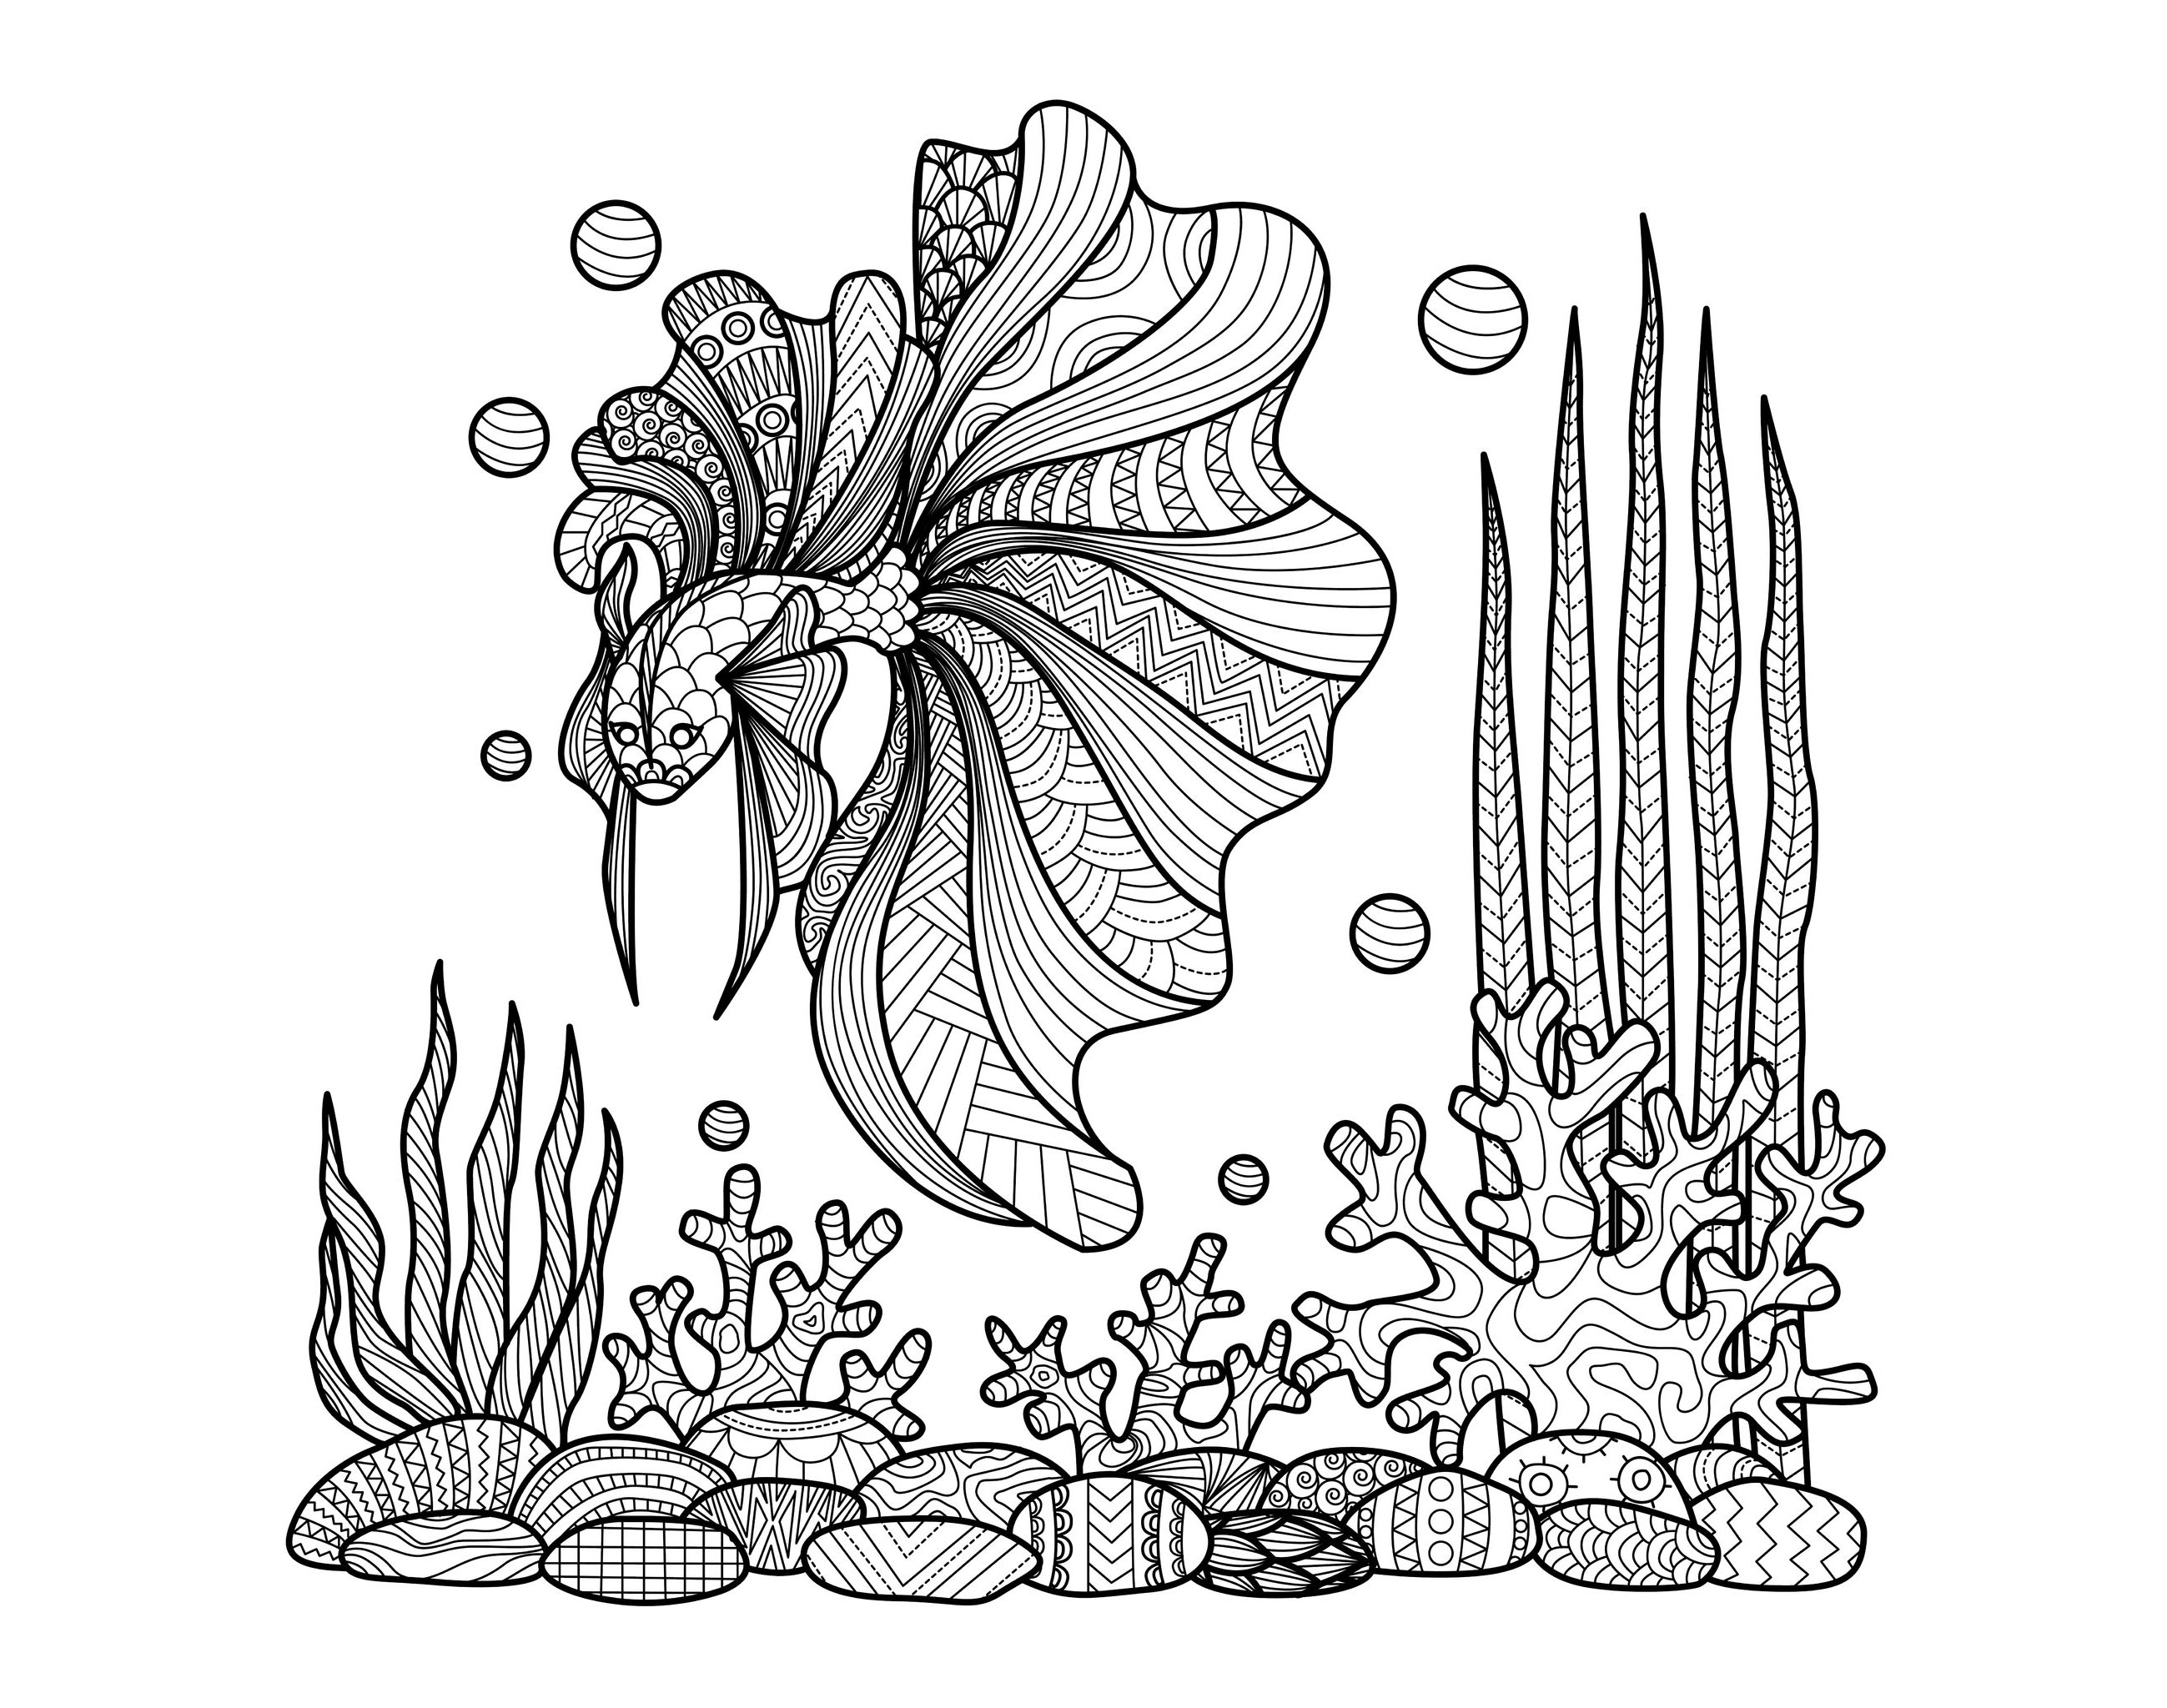 Pisces free to color for children - Pisces Kids Coloring Pages